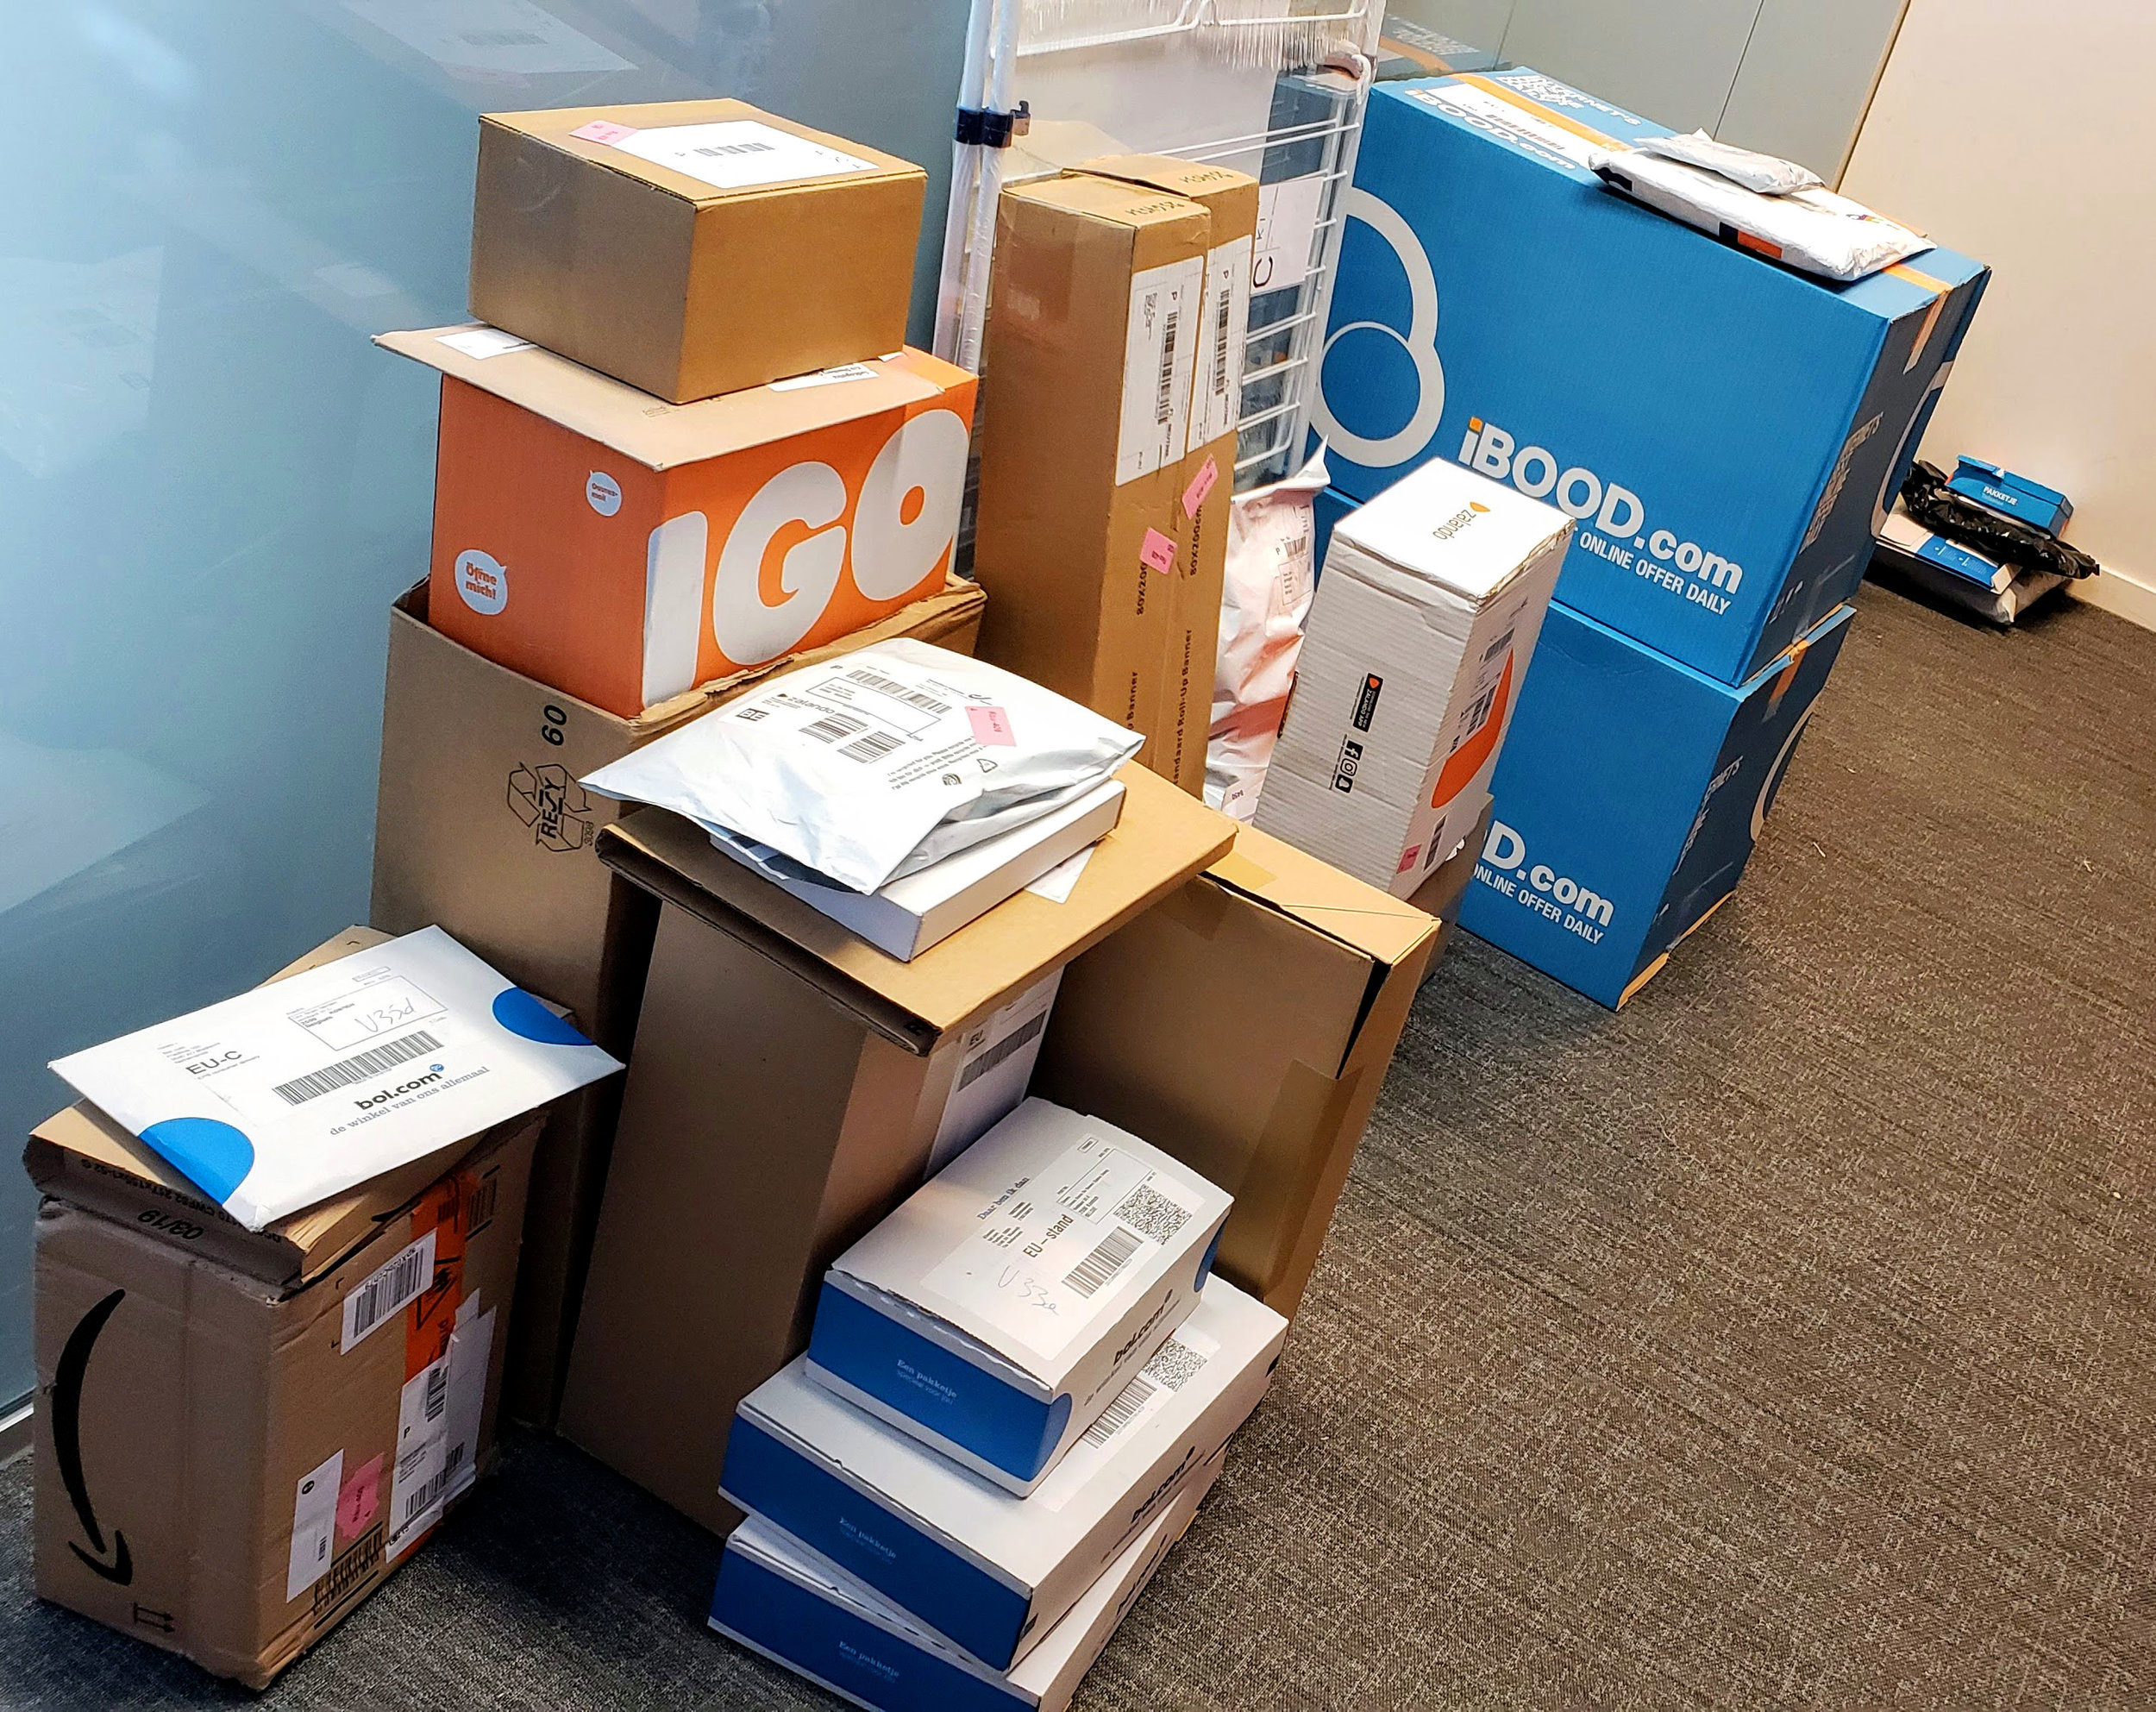 The problem - People often have a personal package delivered to their workplace. This is not always convenient for employers, who sometimes experience operational difficulties, especially during peak periods. Some employers even go as far as to forbid at-work delivery.